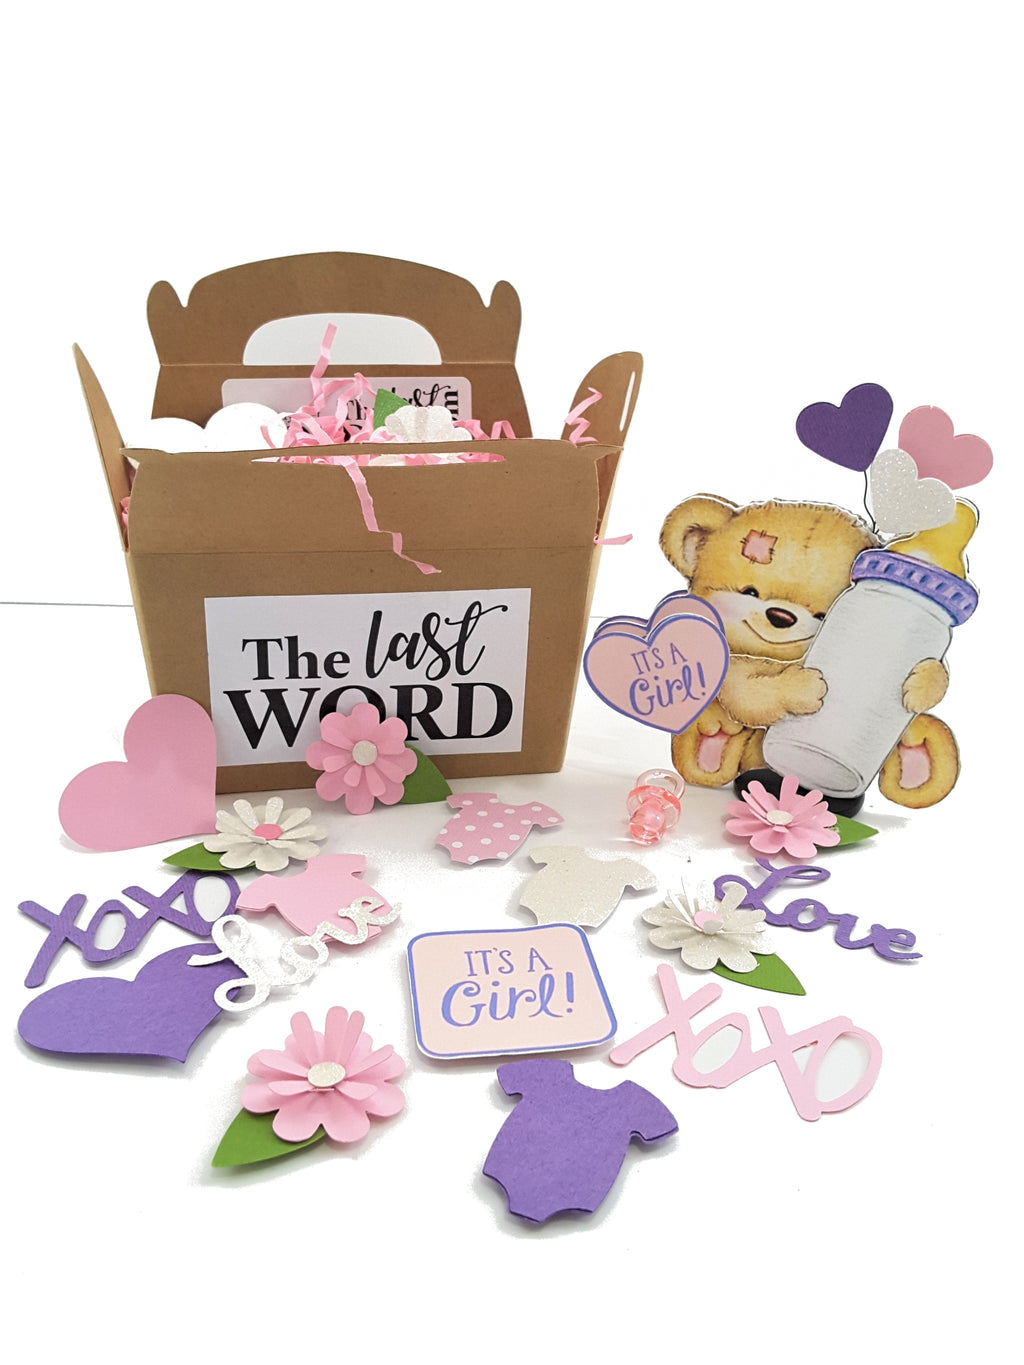 3D BABY GIRL TEDDY BEAR BIRTH ANNOUNCEMENT OR CONGRATULATIONS